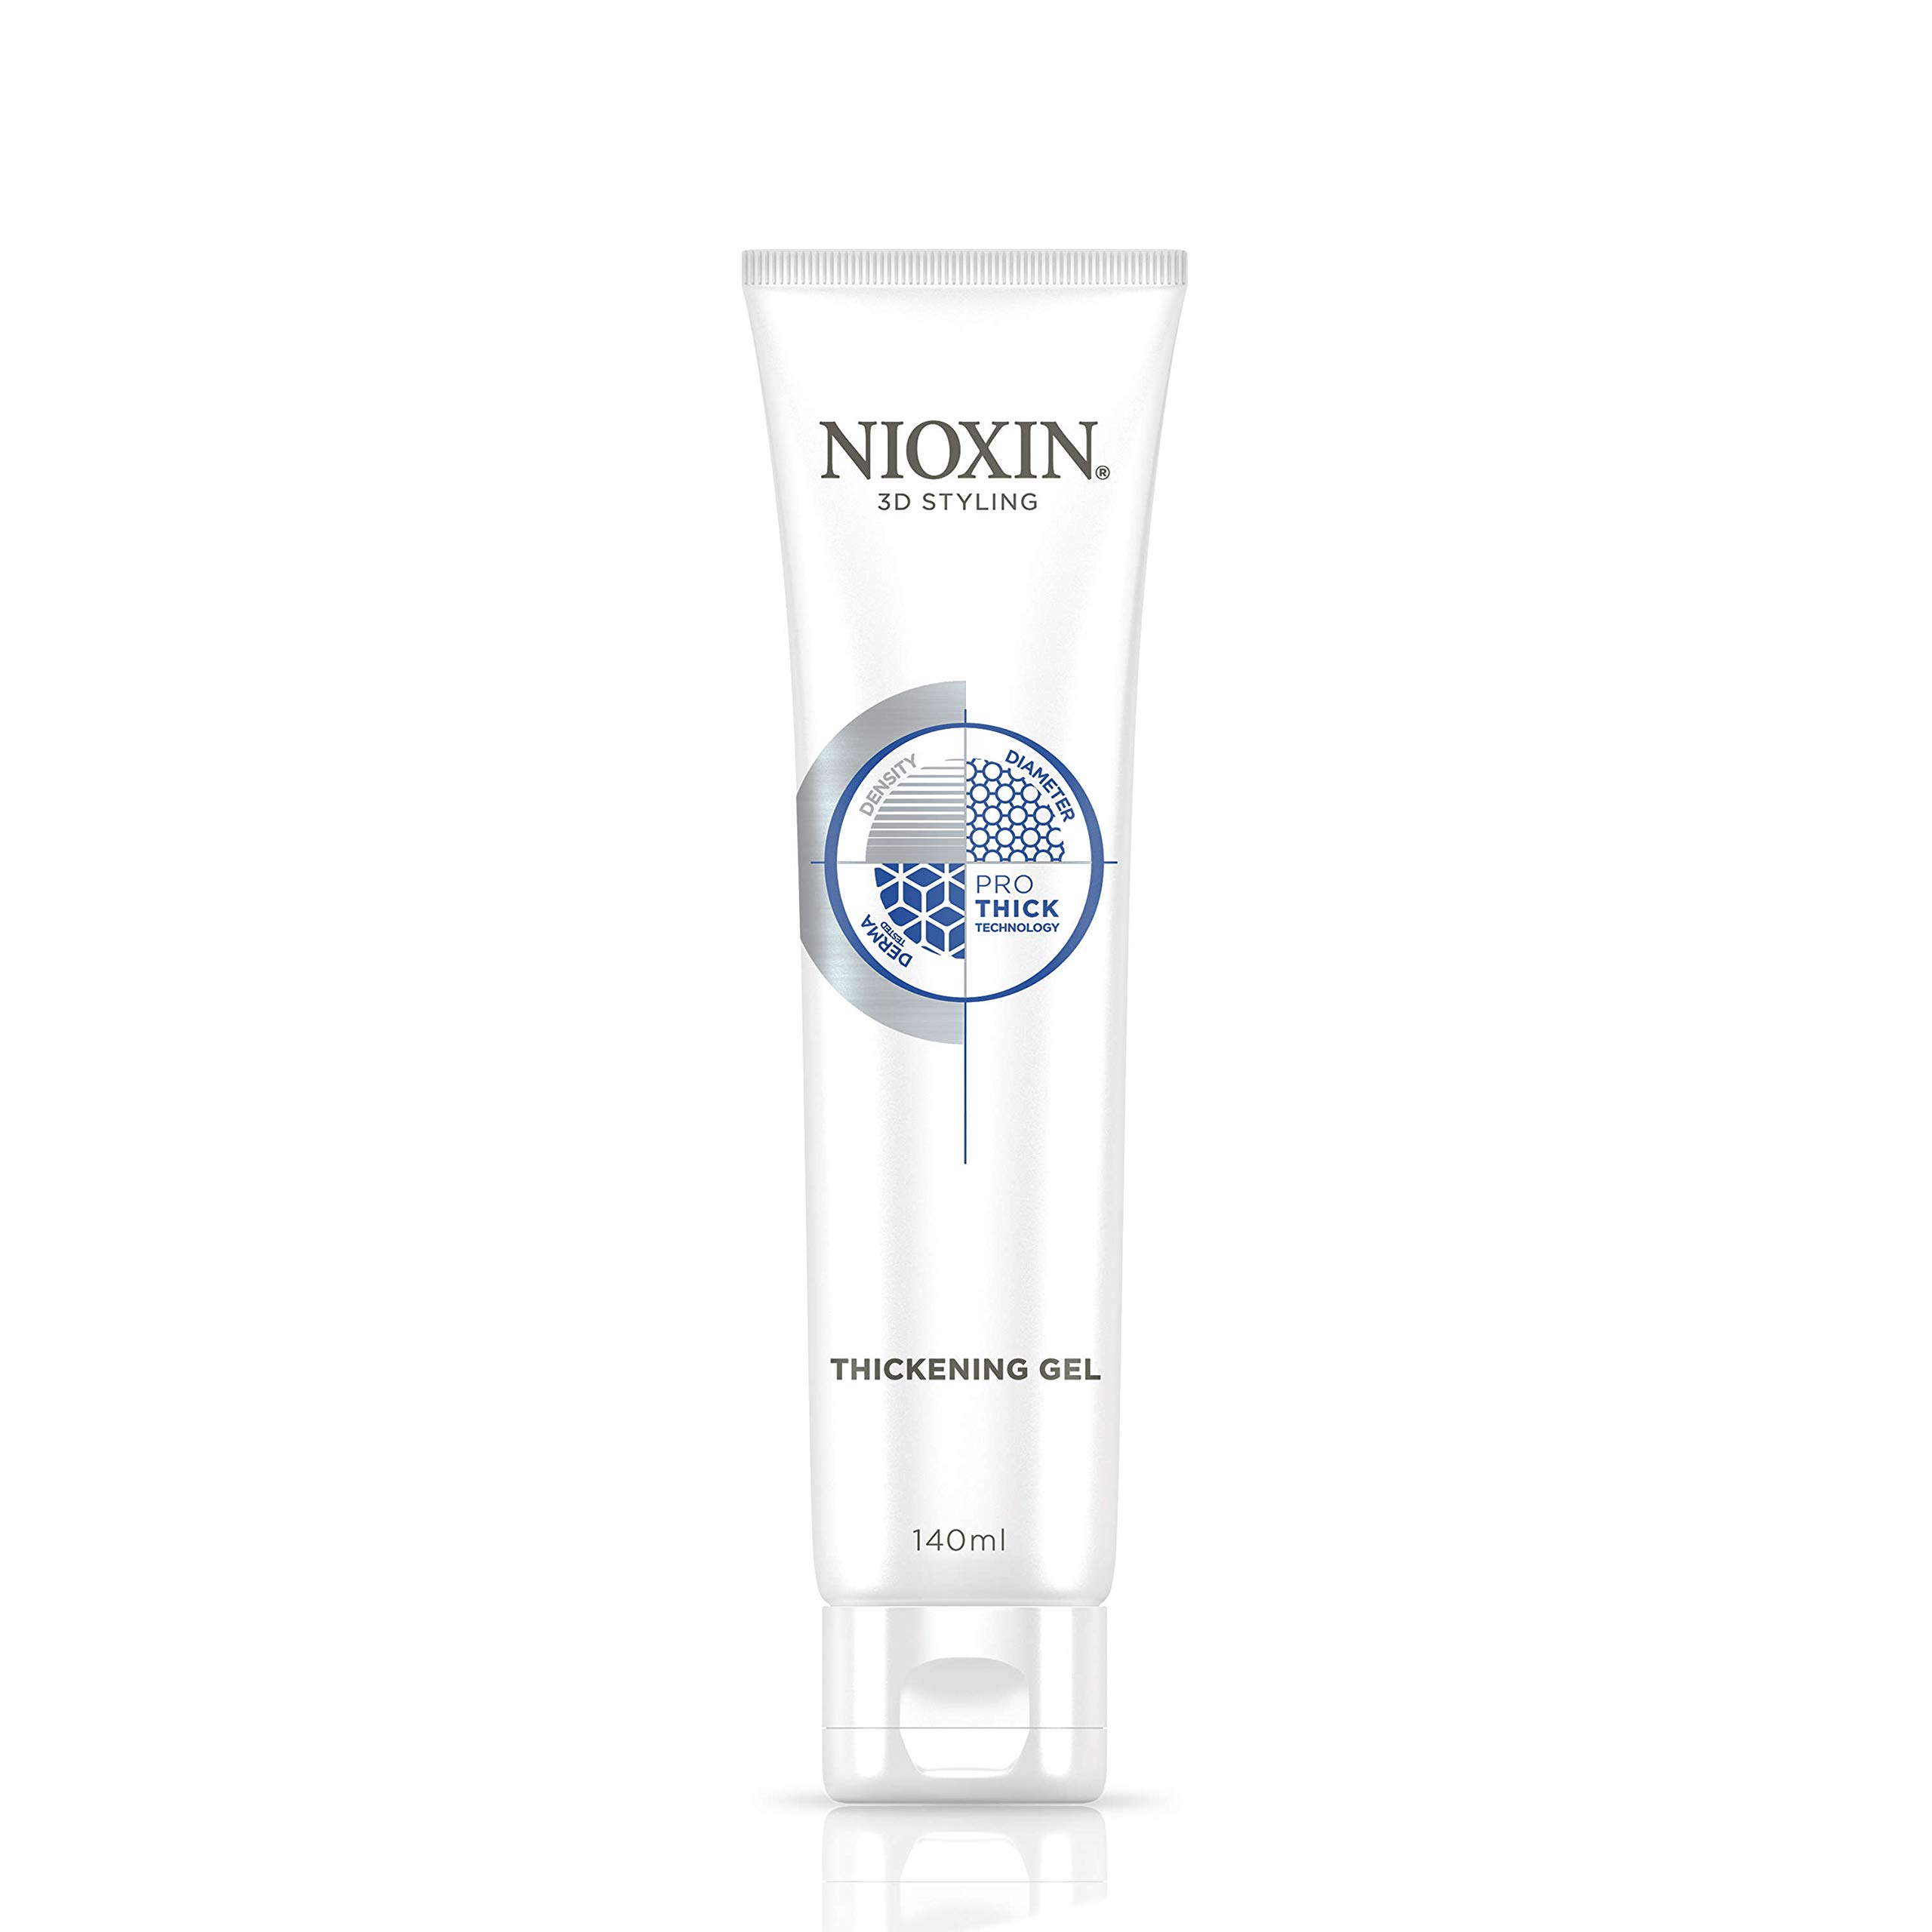 Nioxin Thickening Gel with Pro-Thick for Unisex, 5.13 Ounce